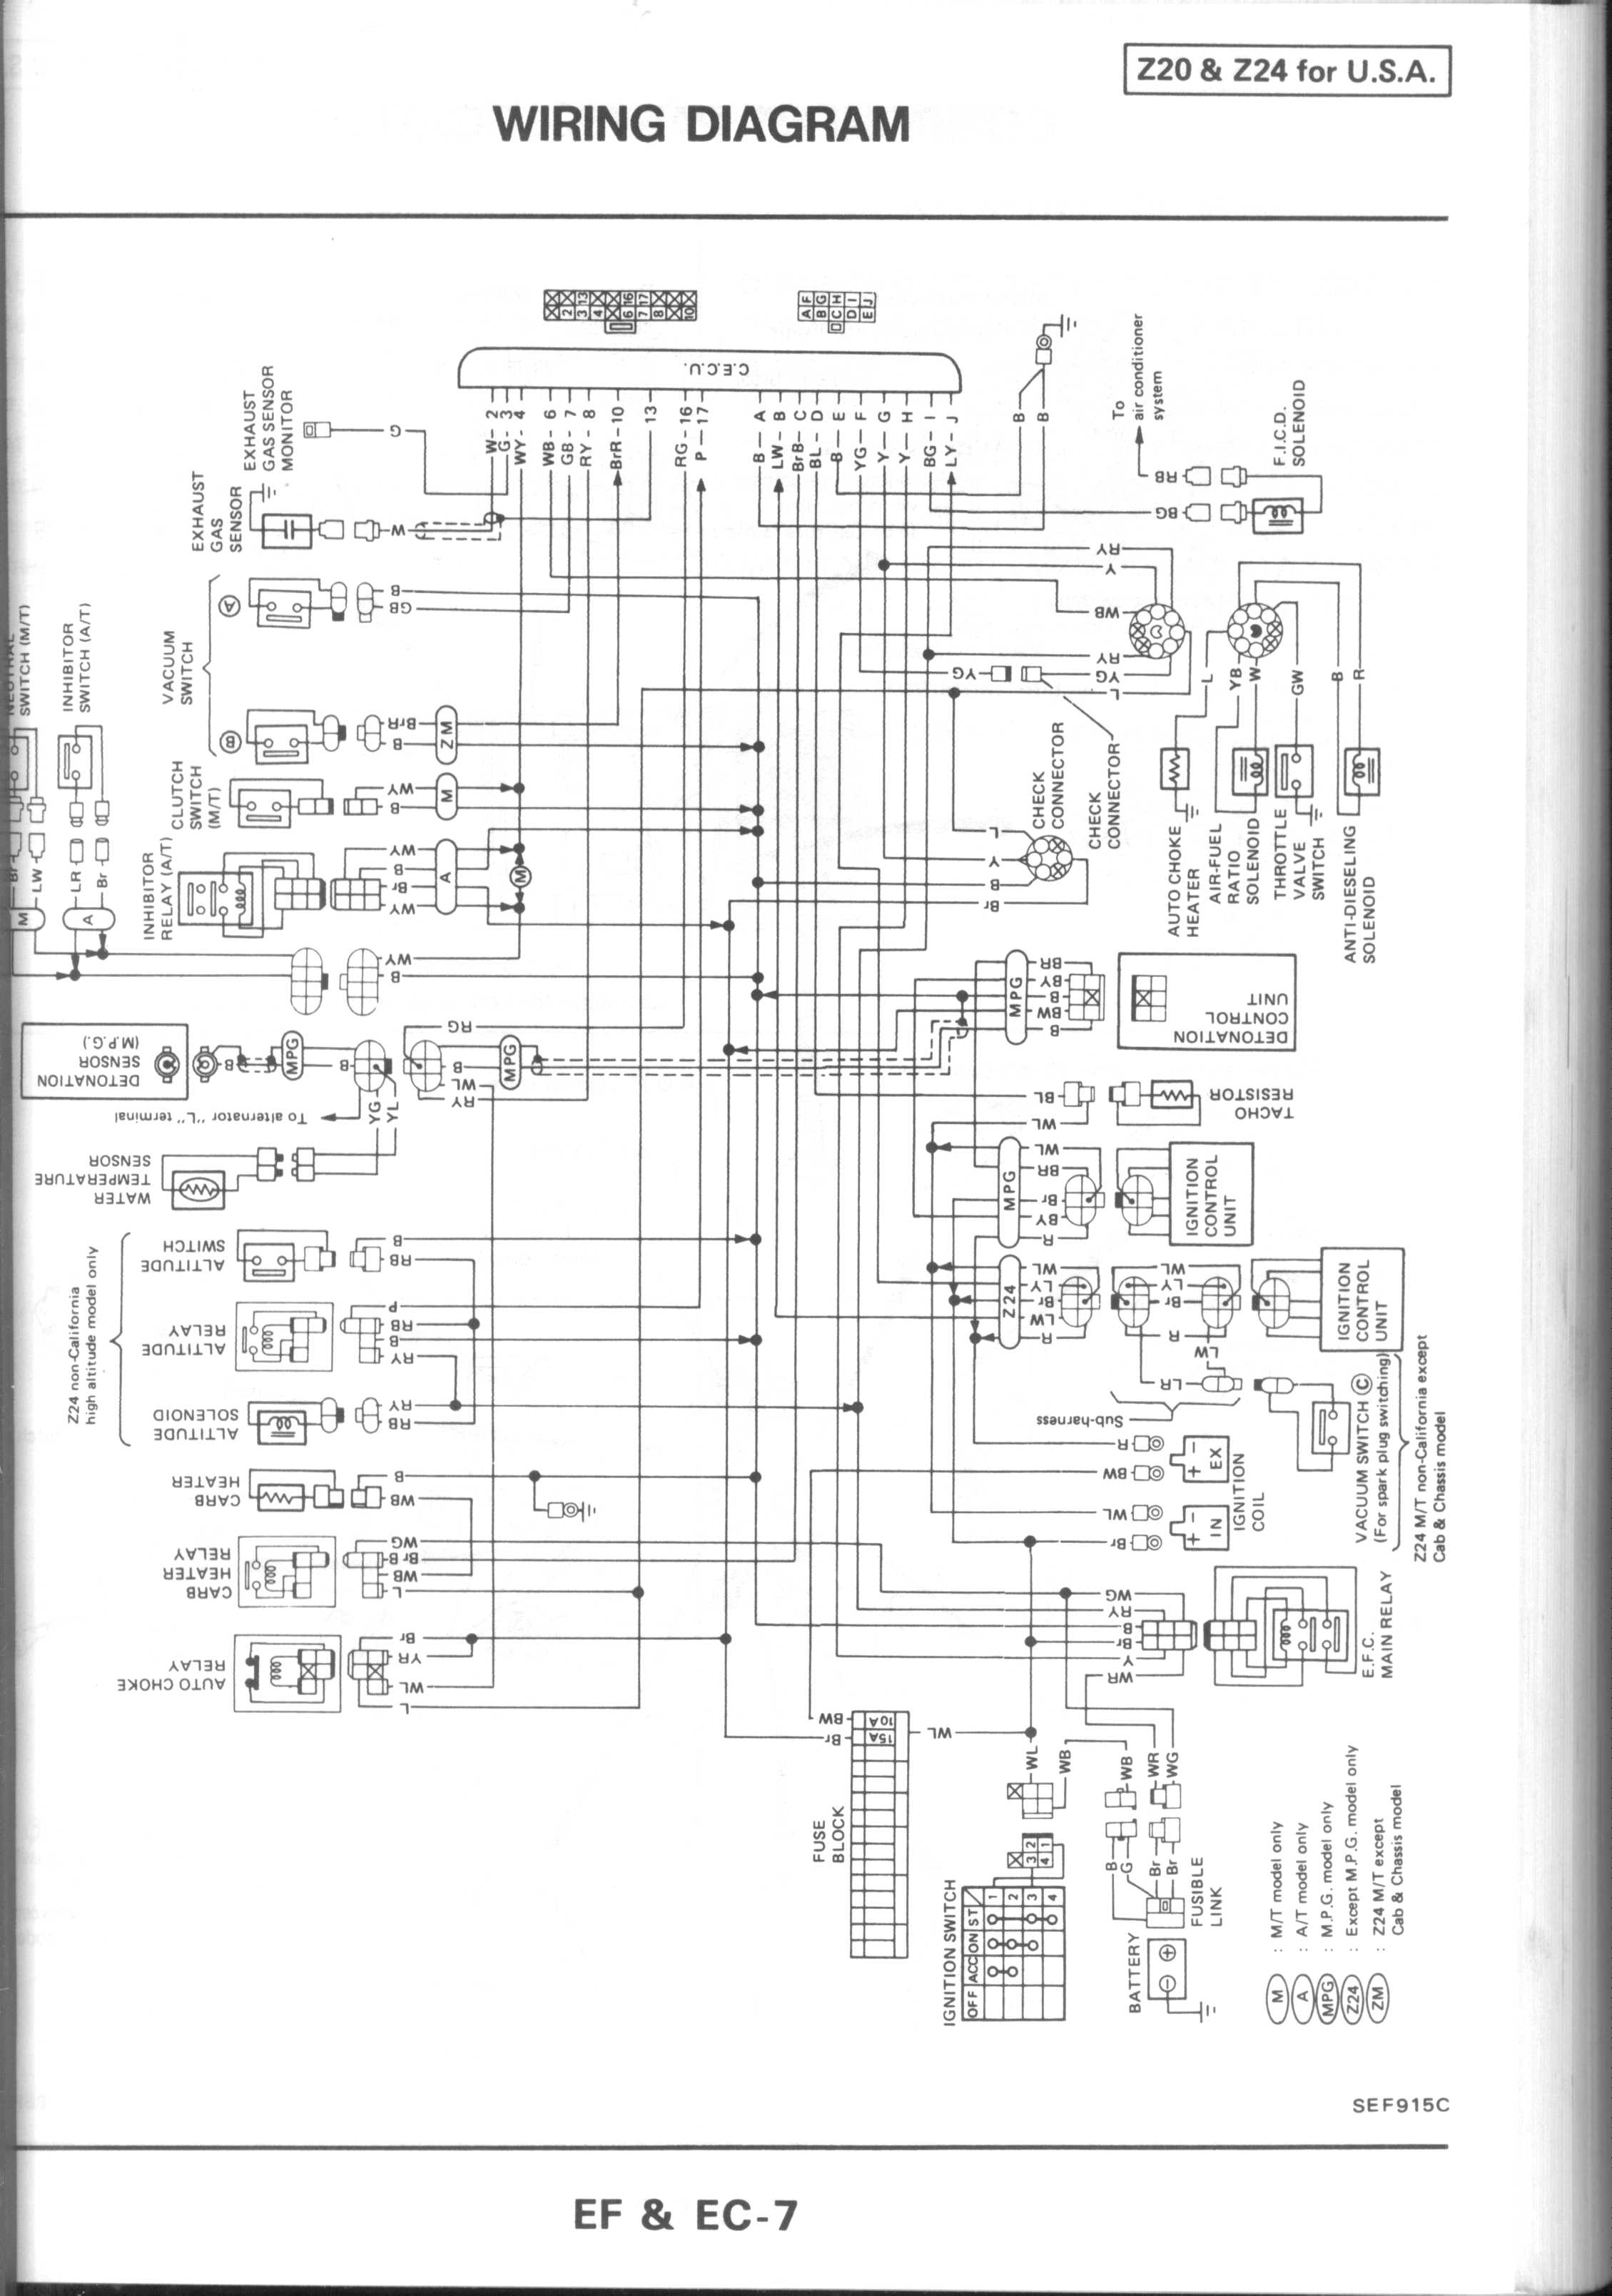 Wiring Diagram For 87 Nissan Truck Data S Plan Electrical D21 Fuse Online Western Star 1988